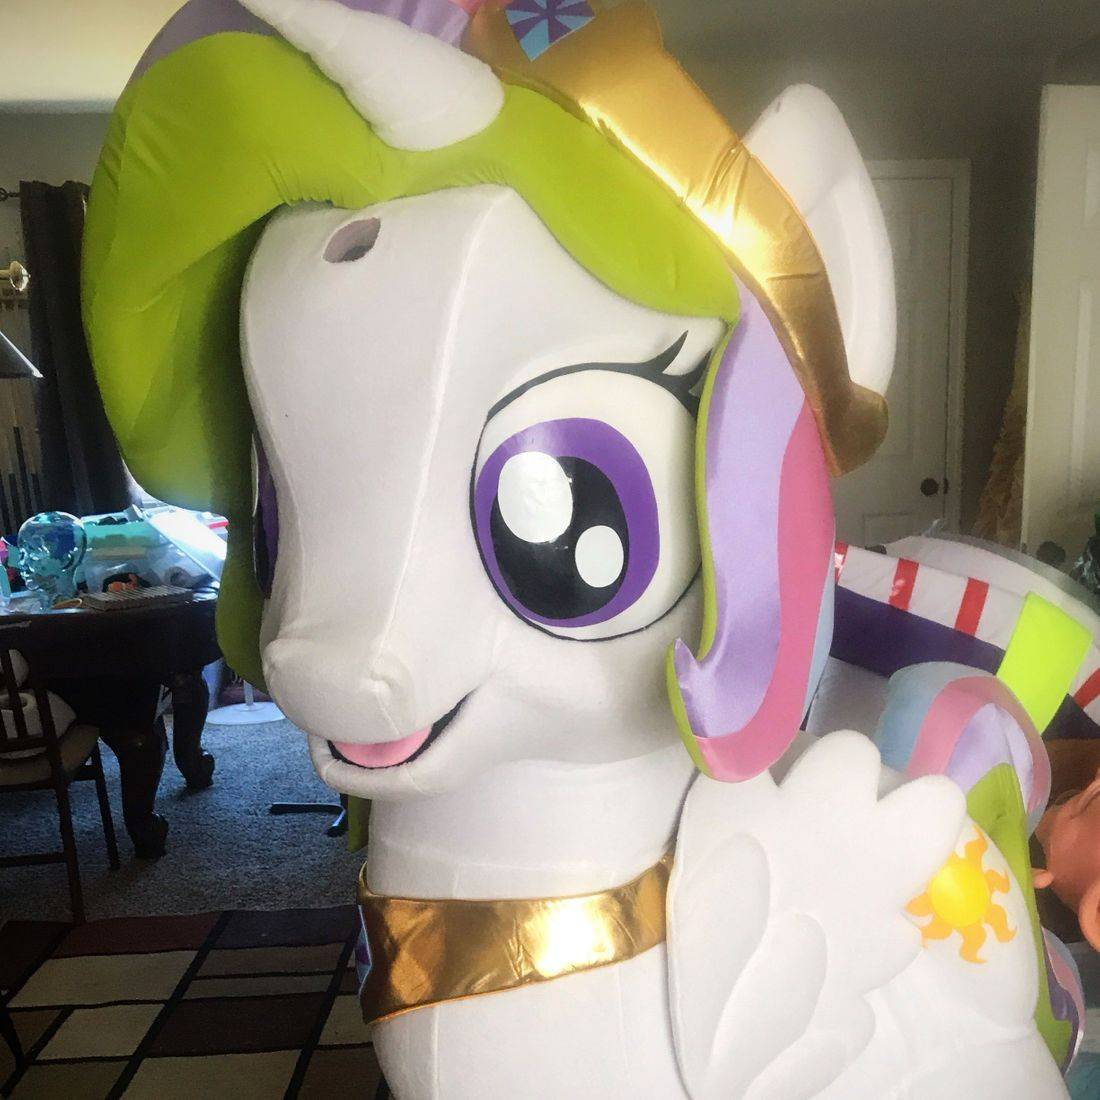 A white unicorn mascot character with rainbow colored hair.